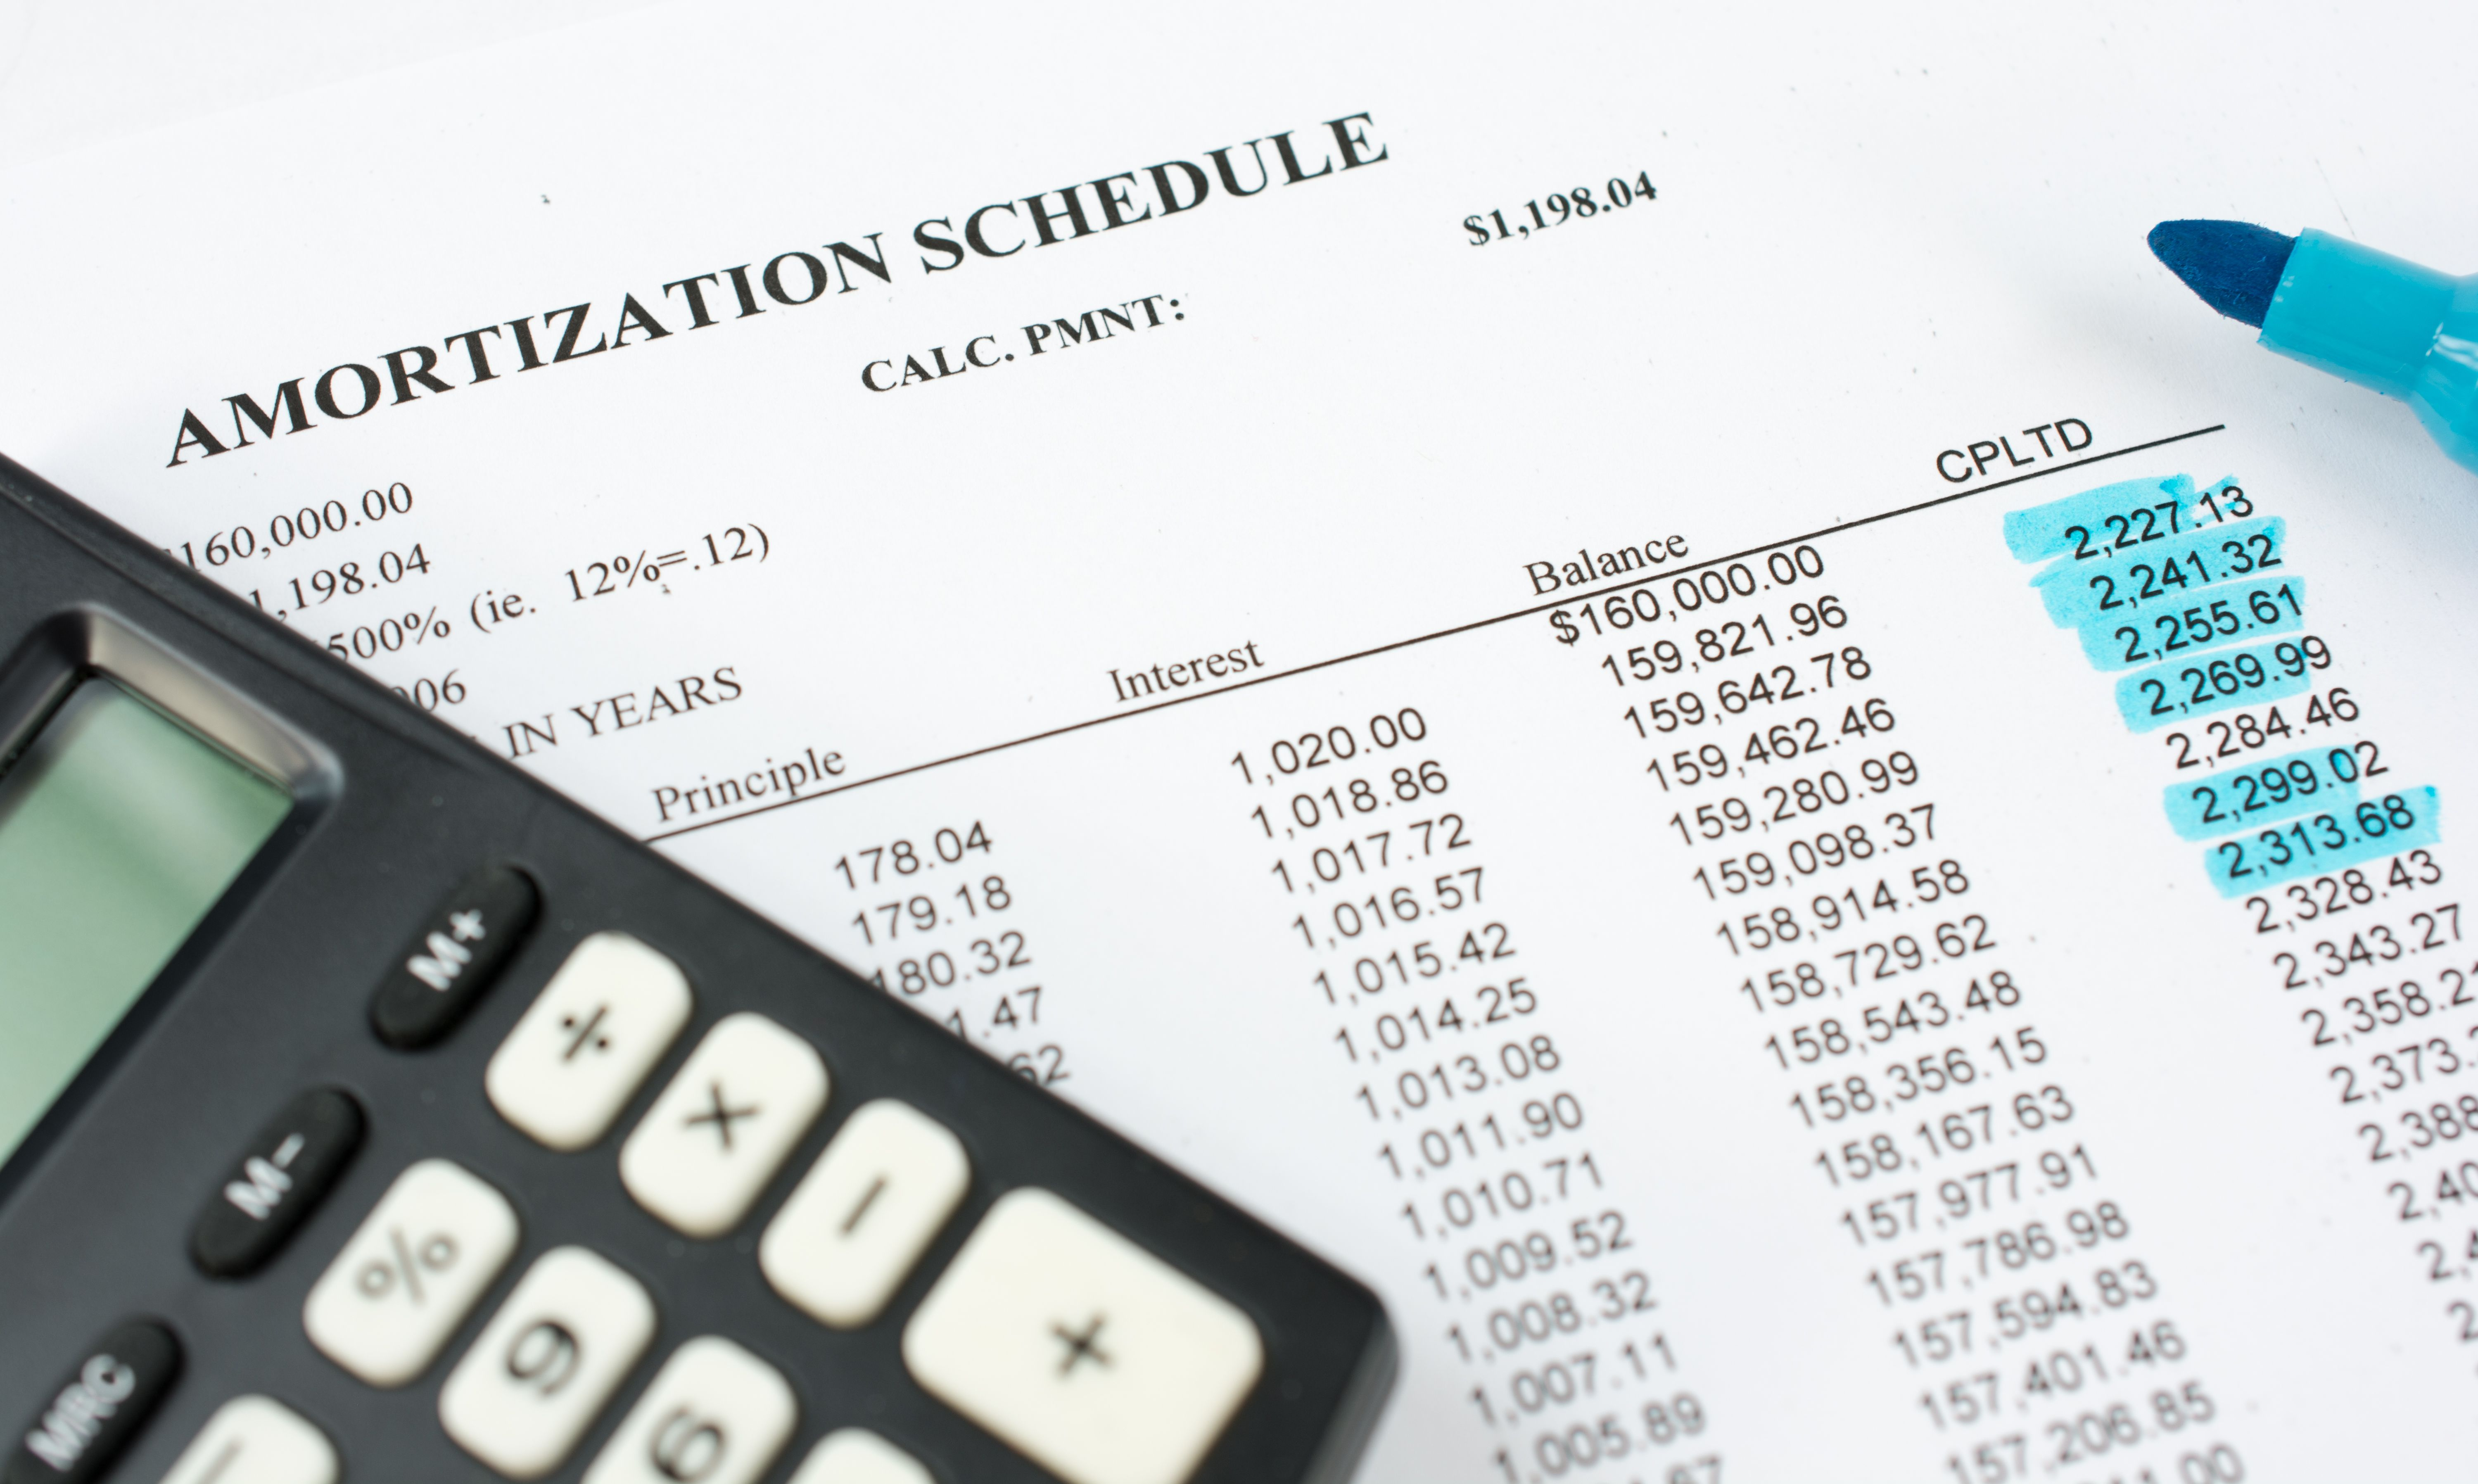 earnings before interest  depreciation and amortization